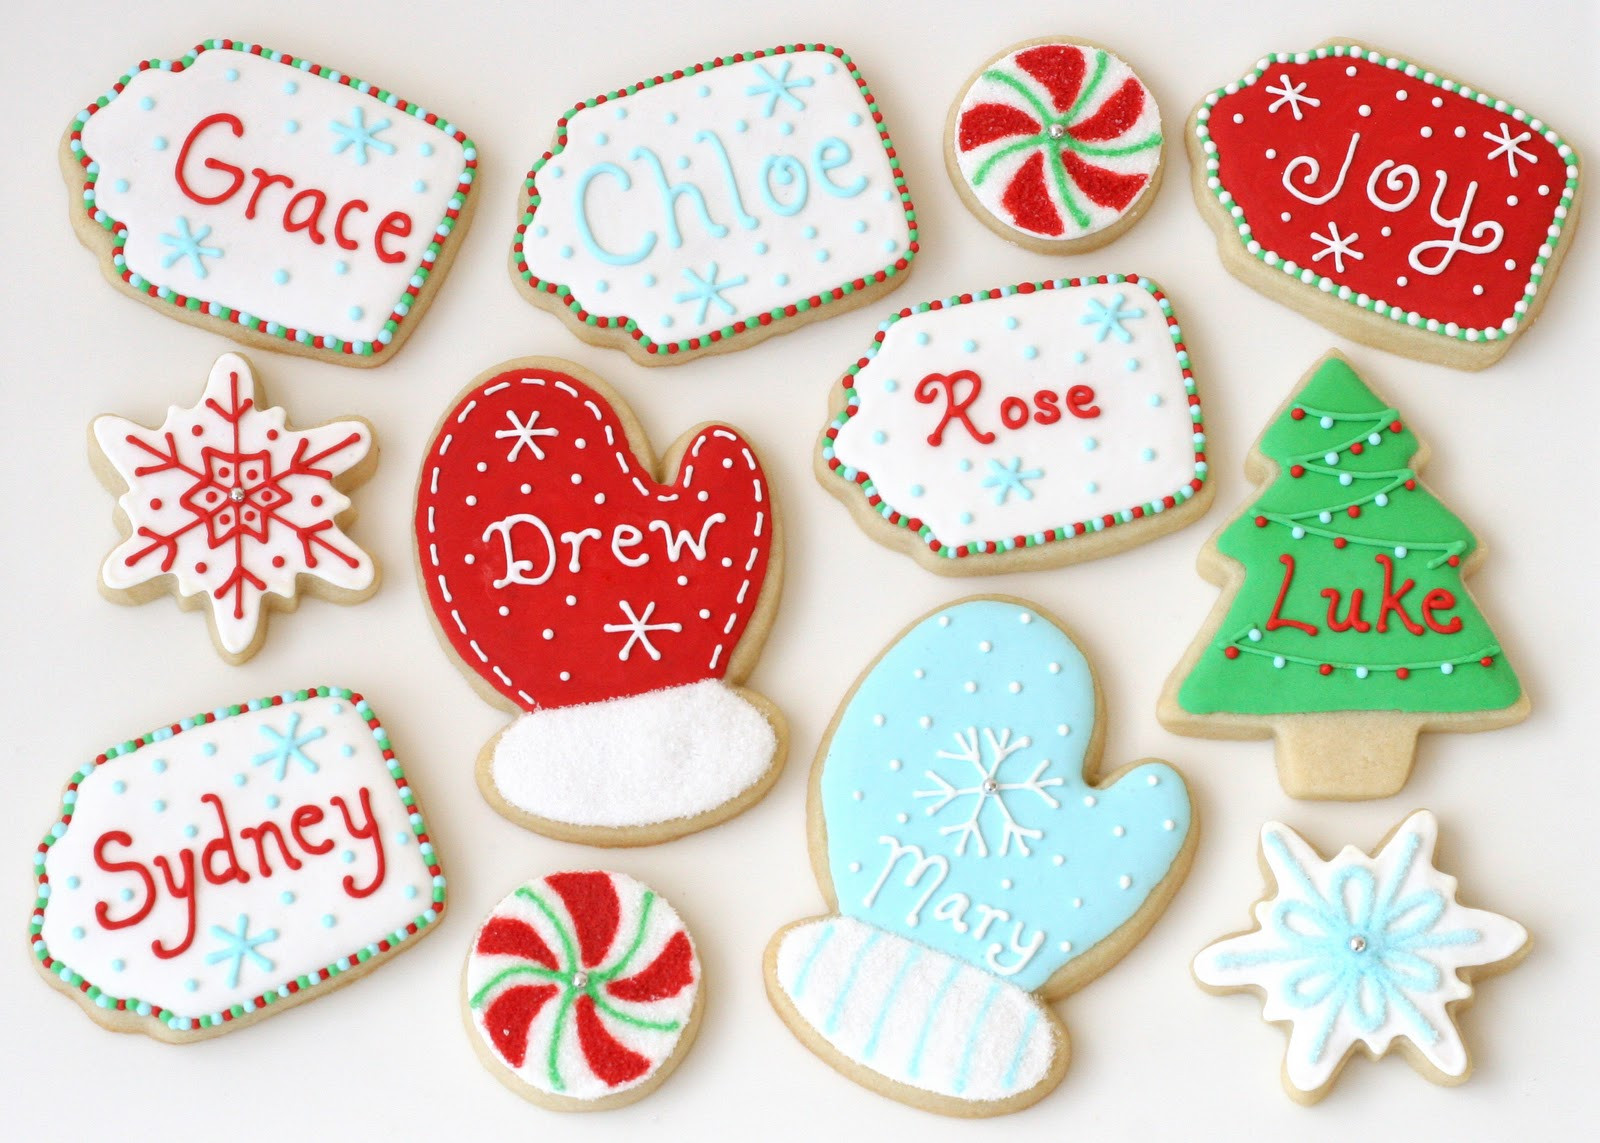 Christmas Cookies Decorated  Christmas Cookies Galore Glorious Treats